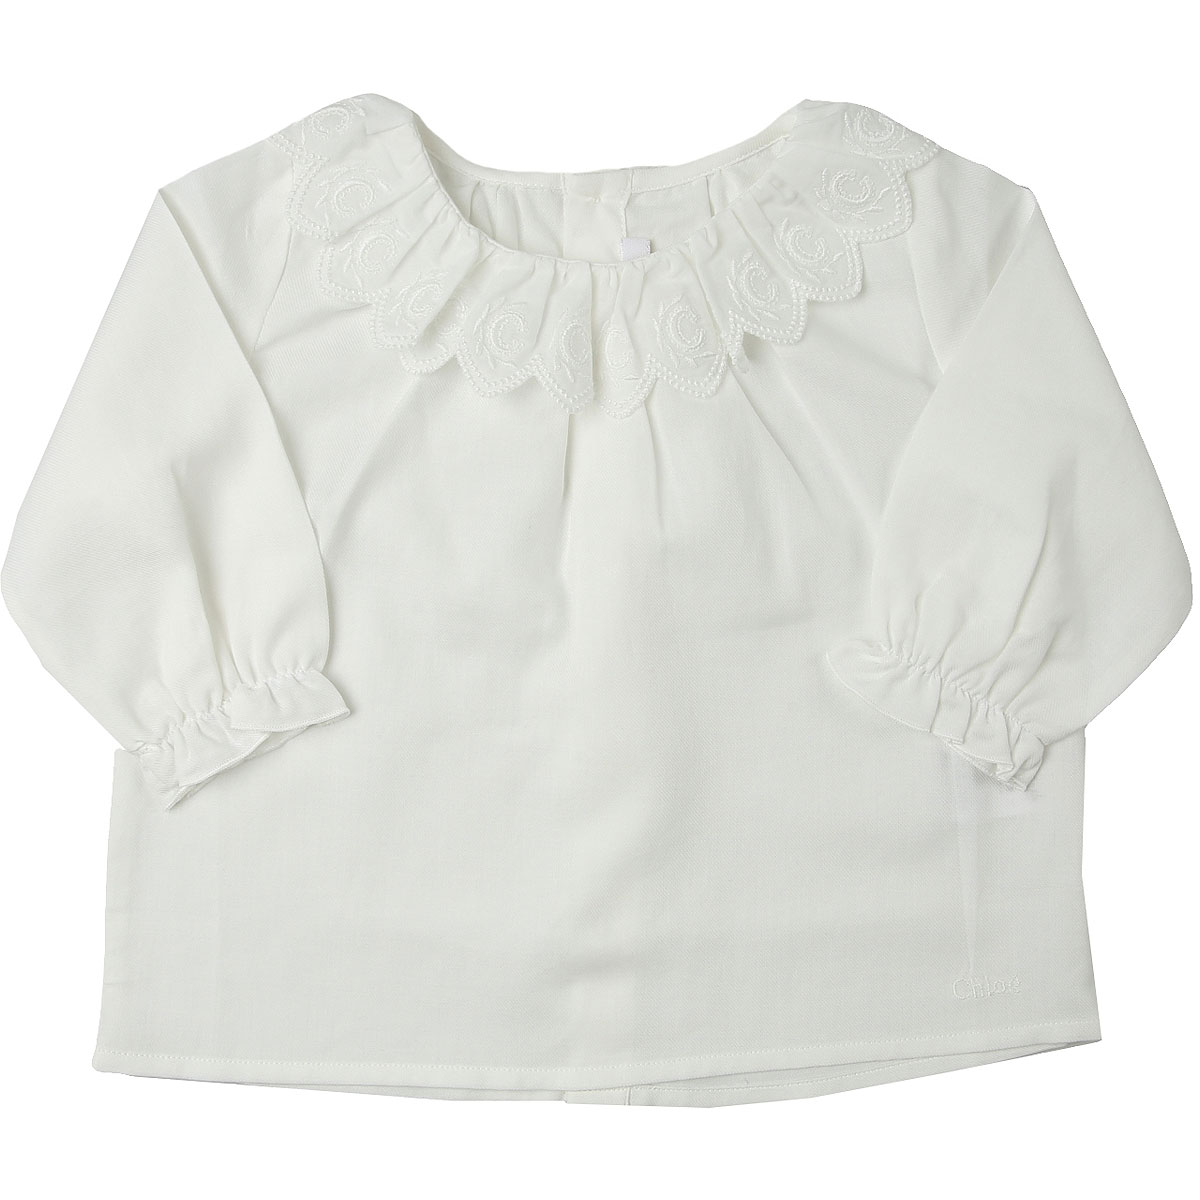 Chloe Baby Shirts for Girls On Sale, White, Cotton, 2019, 12M 2Y 6M 9M